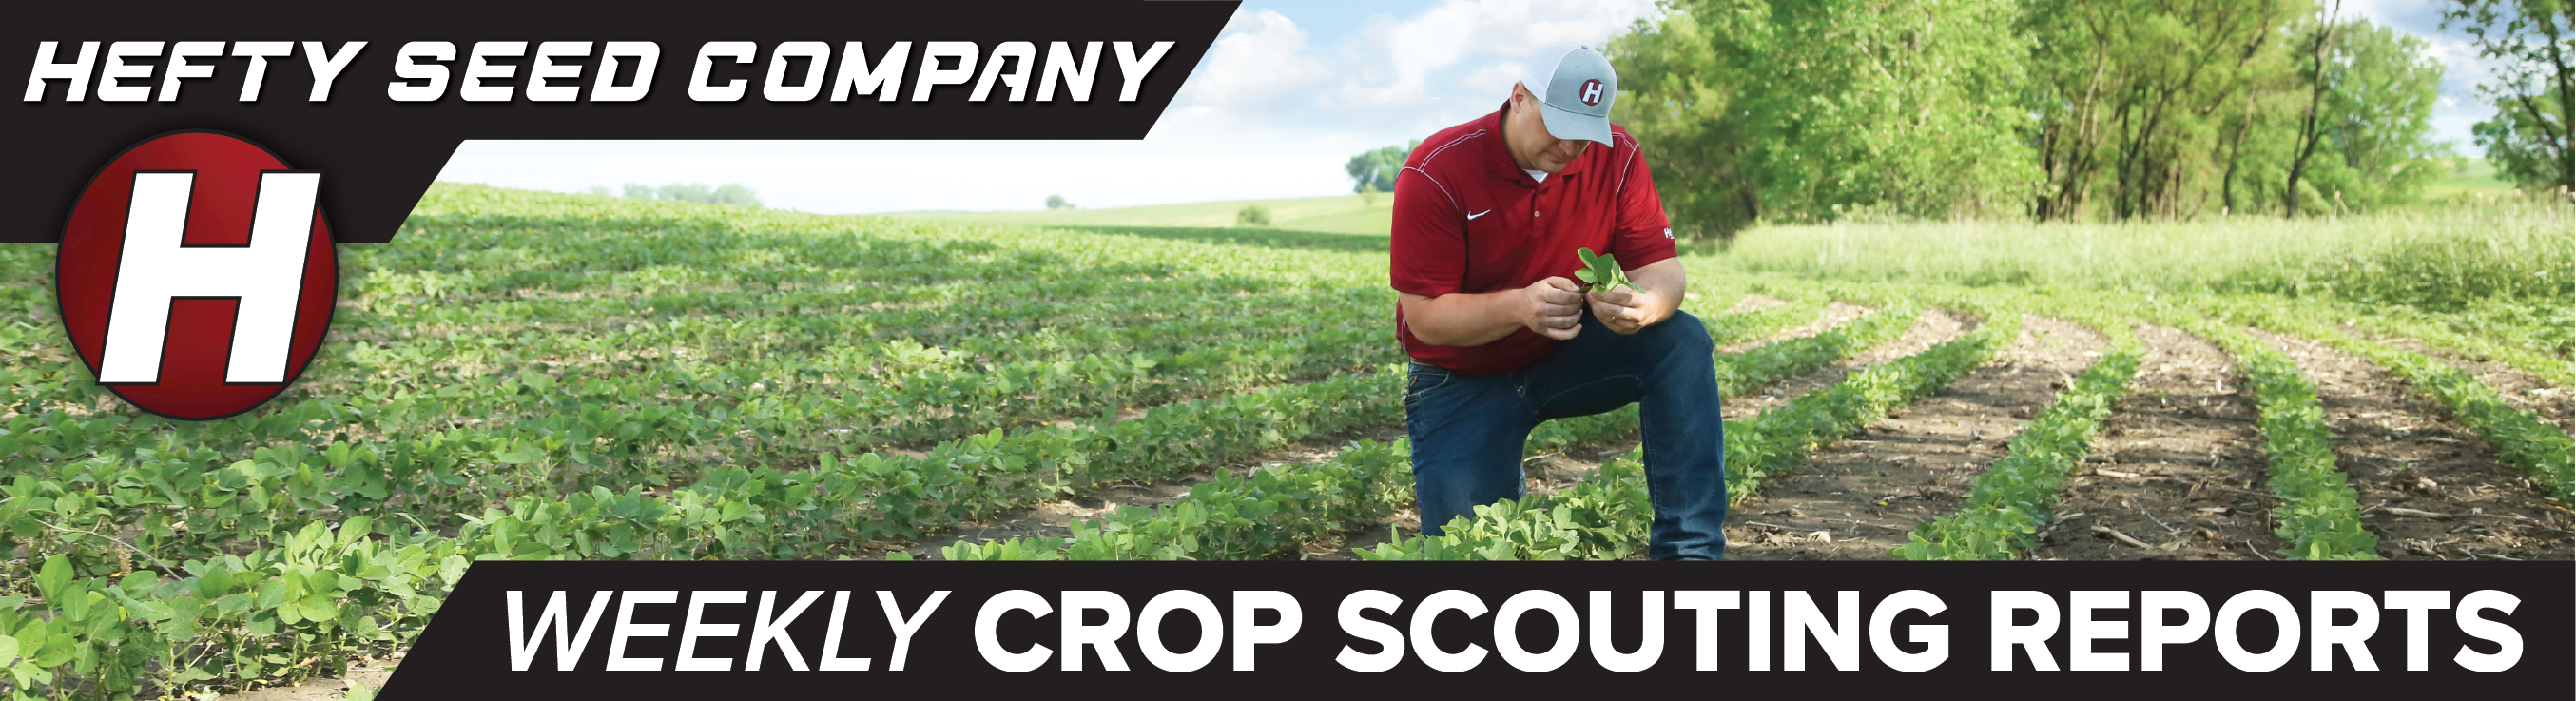 weekly crop scouting report image